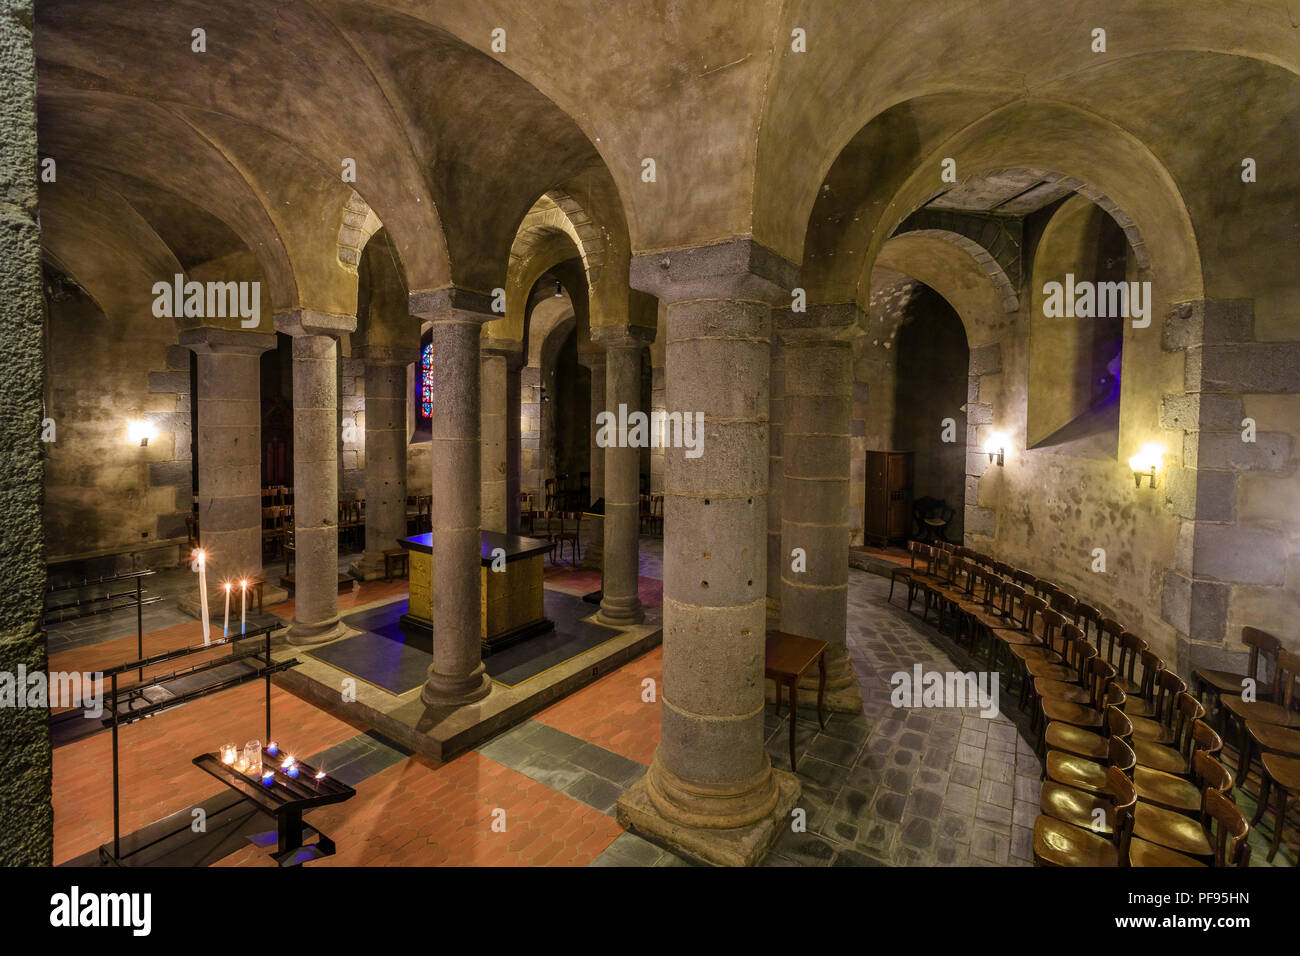 France, Puy de Dome, Volcans Auvergne Regional Natural Park, the Monts Dore, Orcival, Notre Dame Orcival basilica dated 12th century, the crypt // Fra - Stock Image